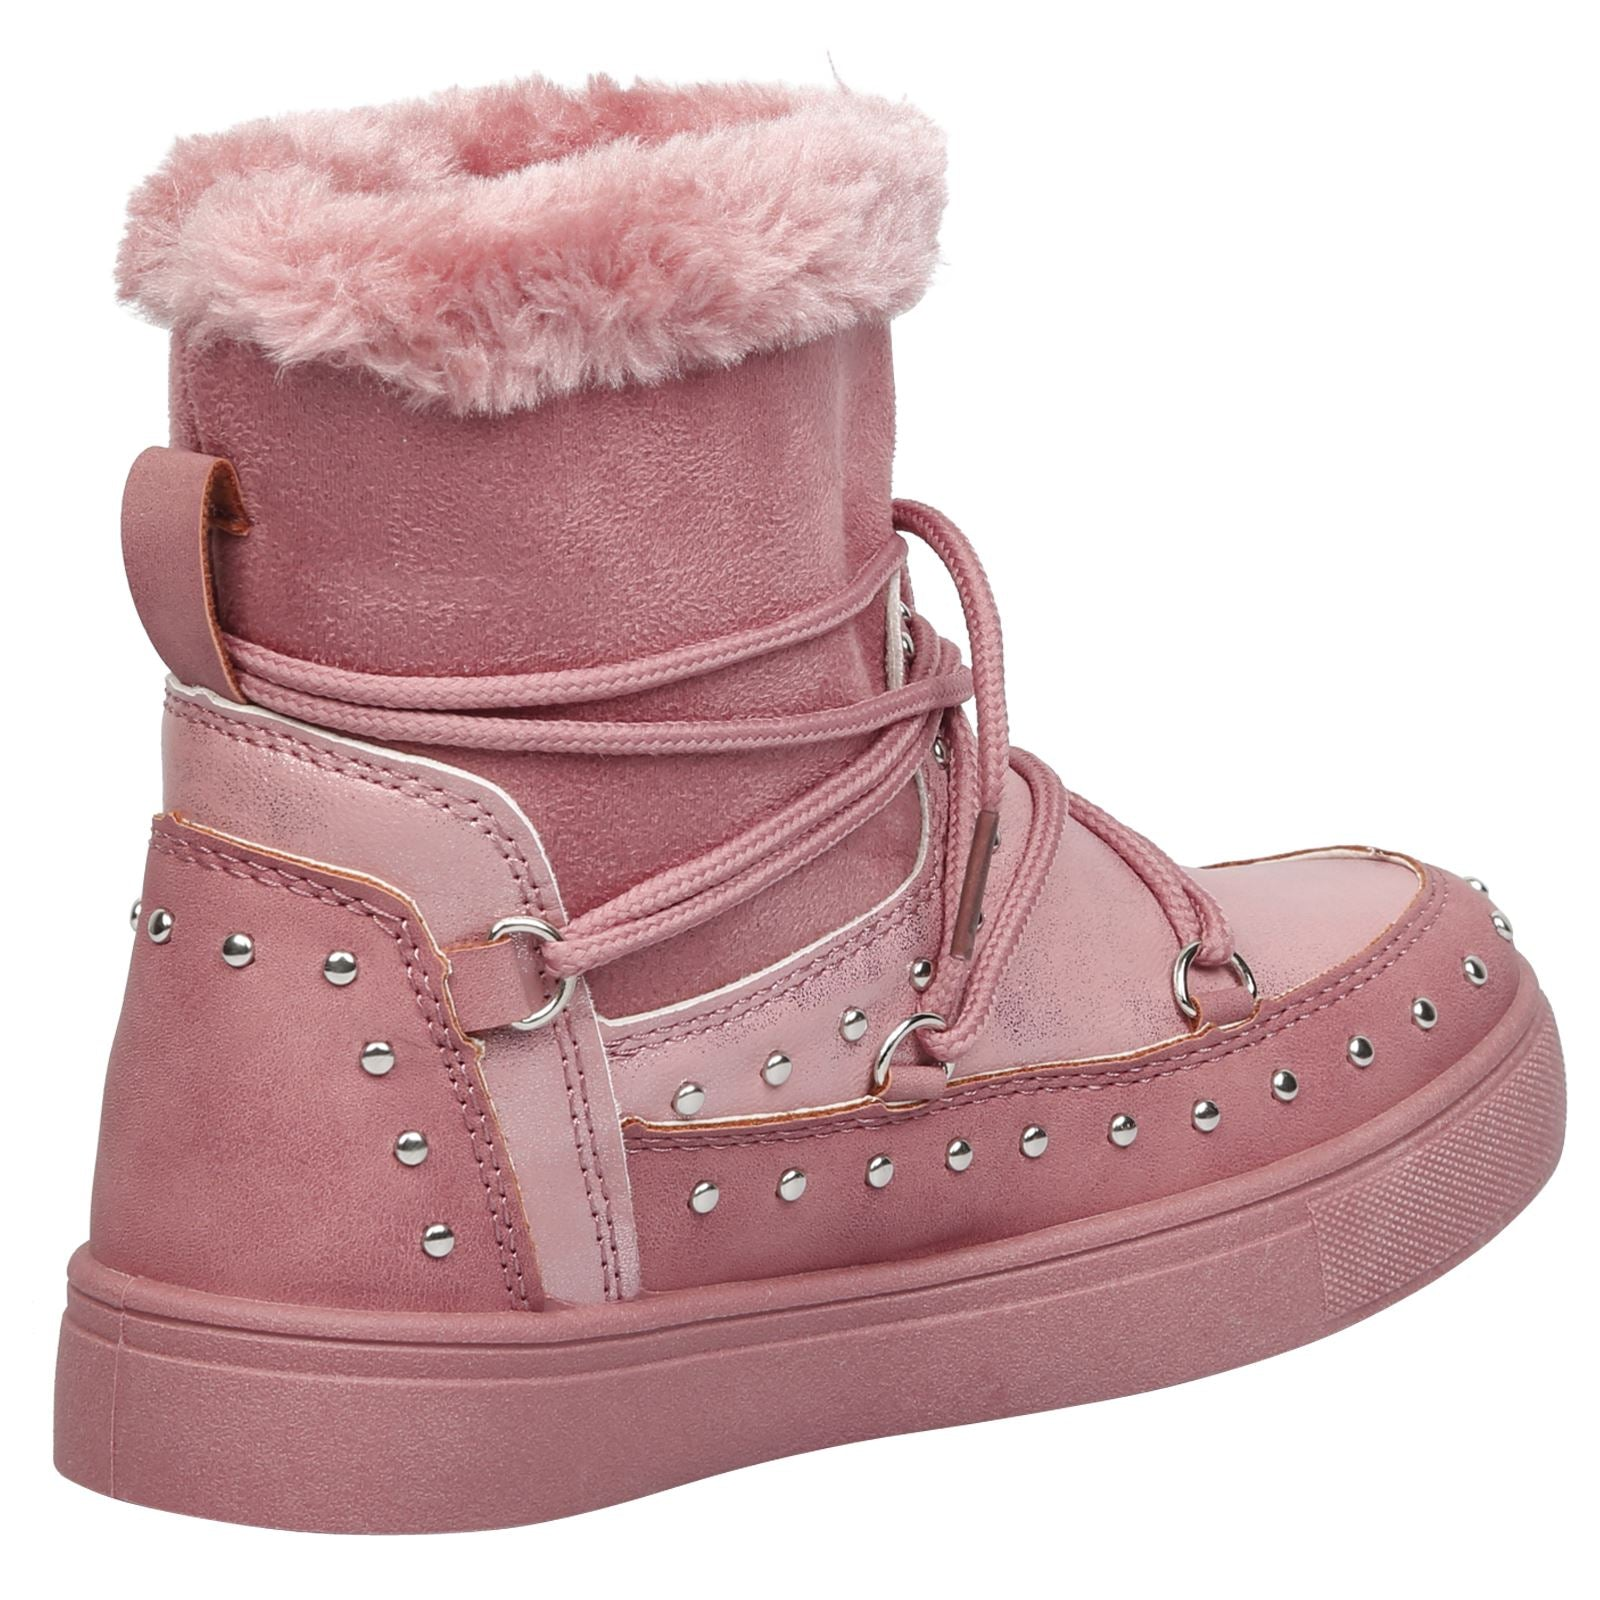 Cecilia Girls Fur Lined Boots in Pink - Feet First Fashion